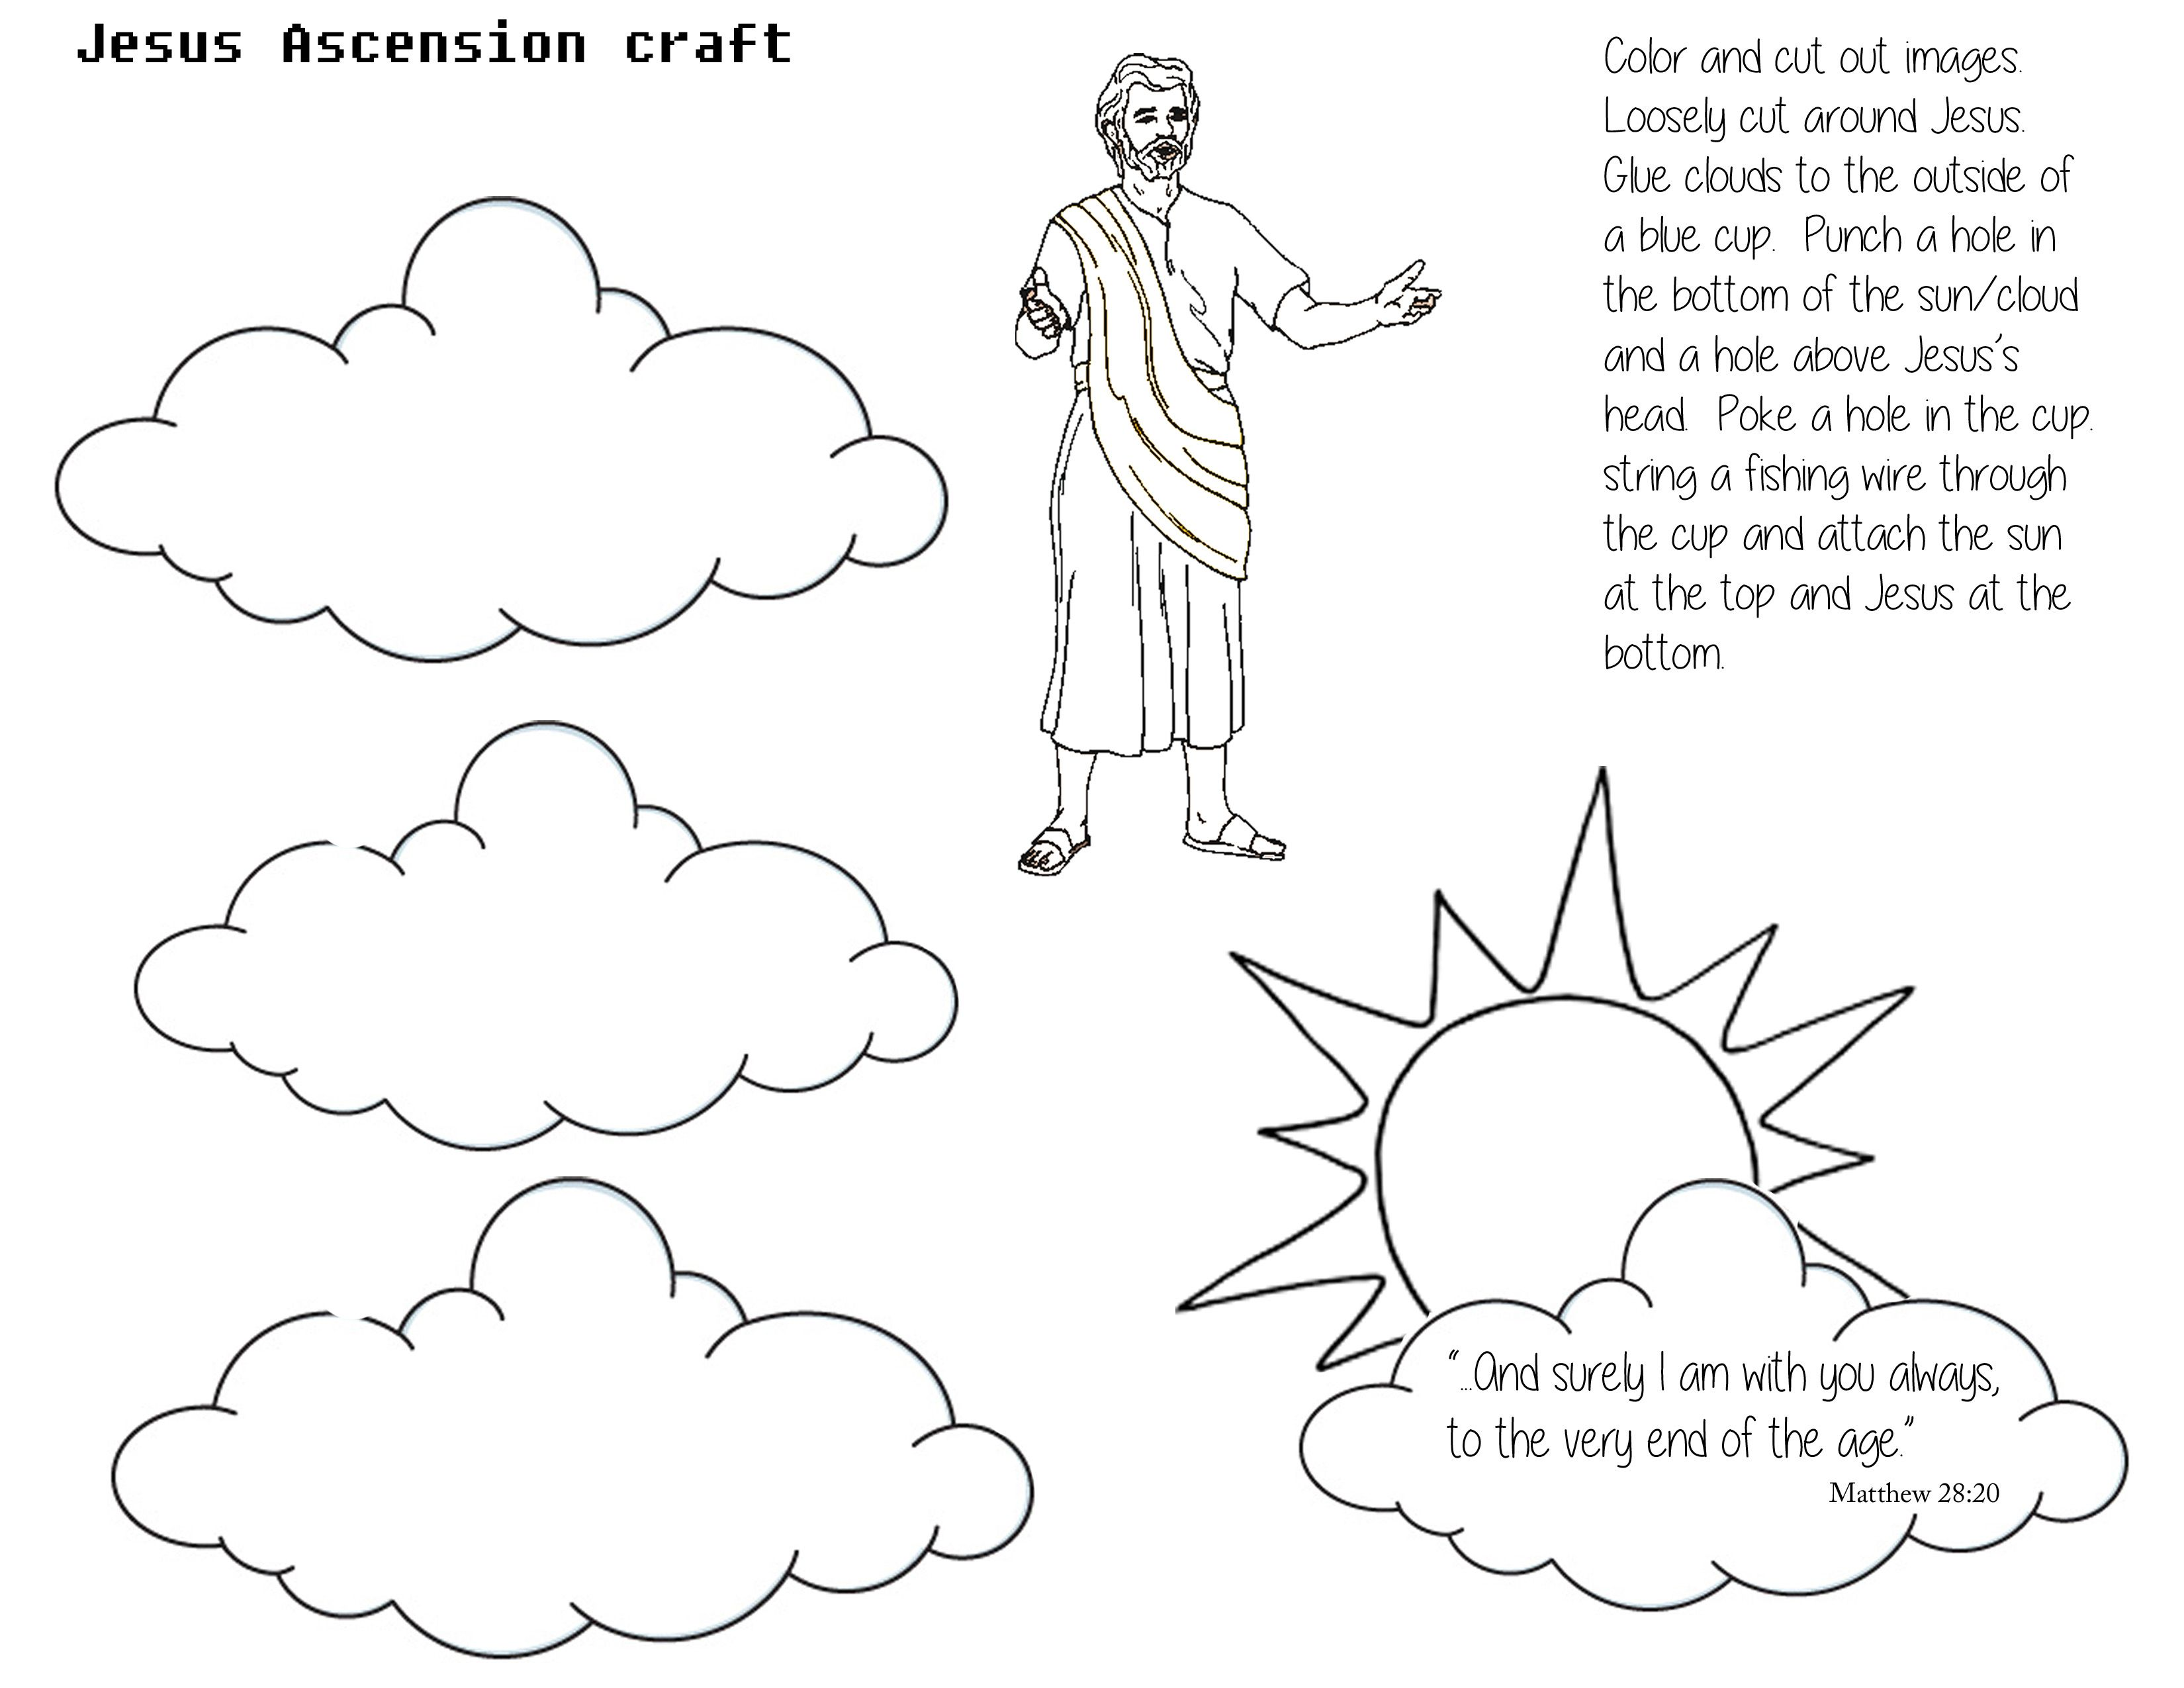 Craft page for Jesus's Ascension. Cut out sun/cloud and